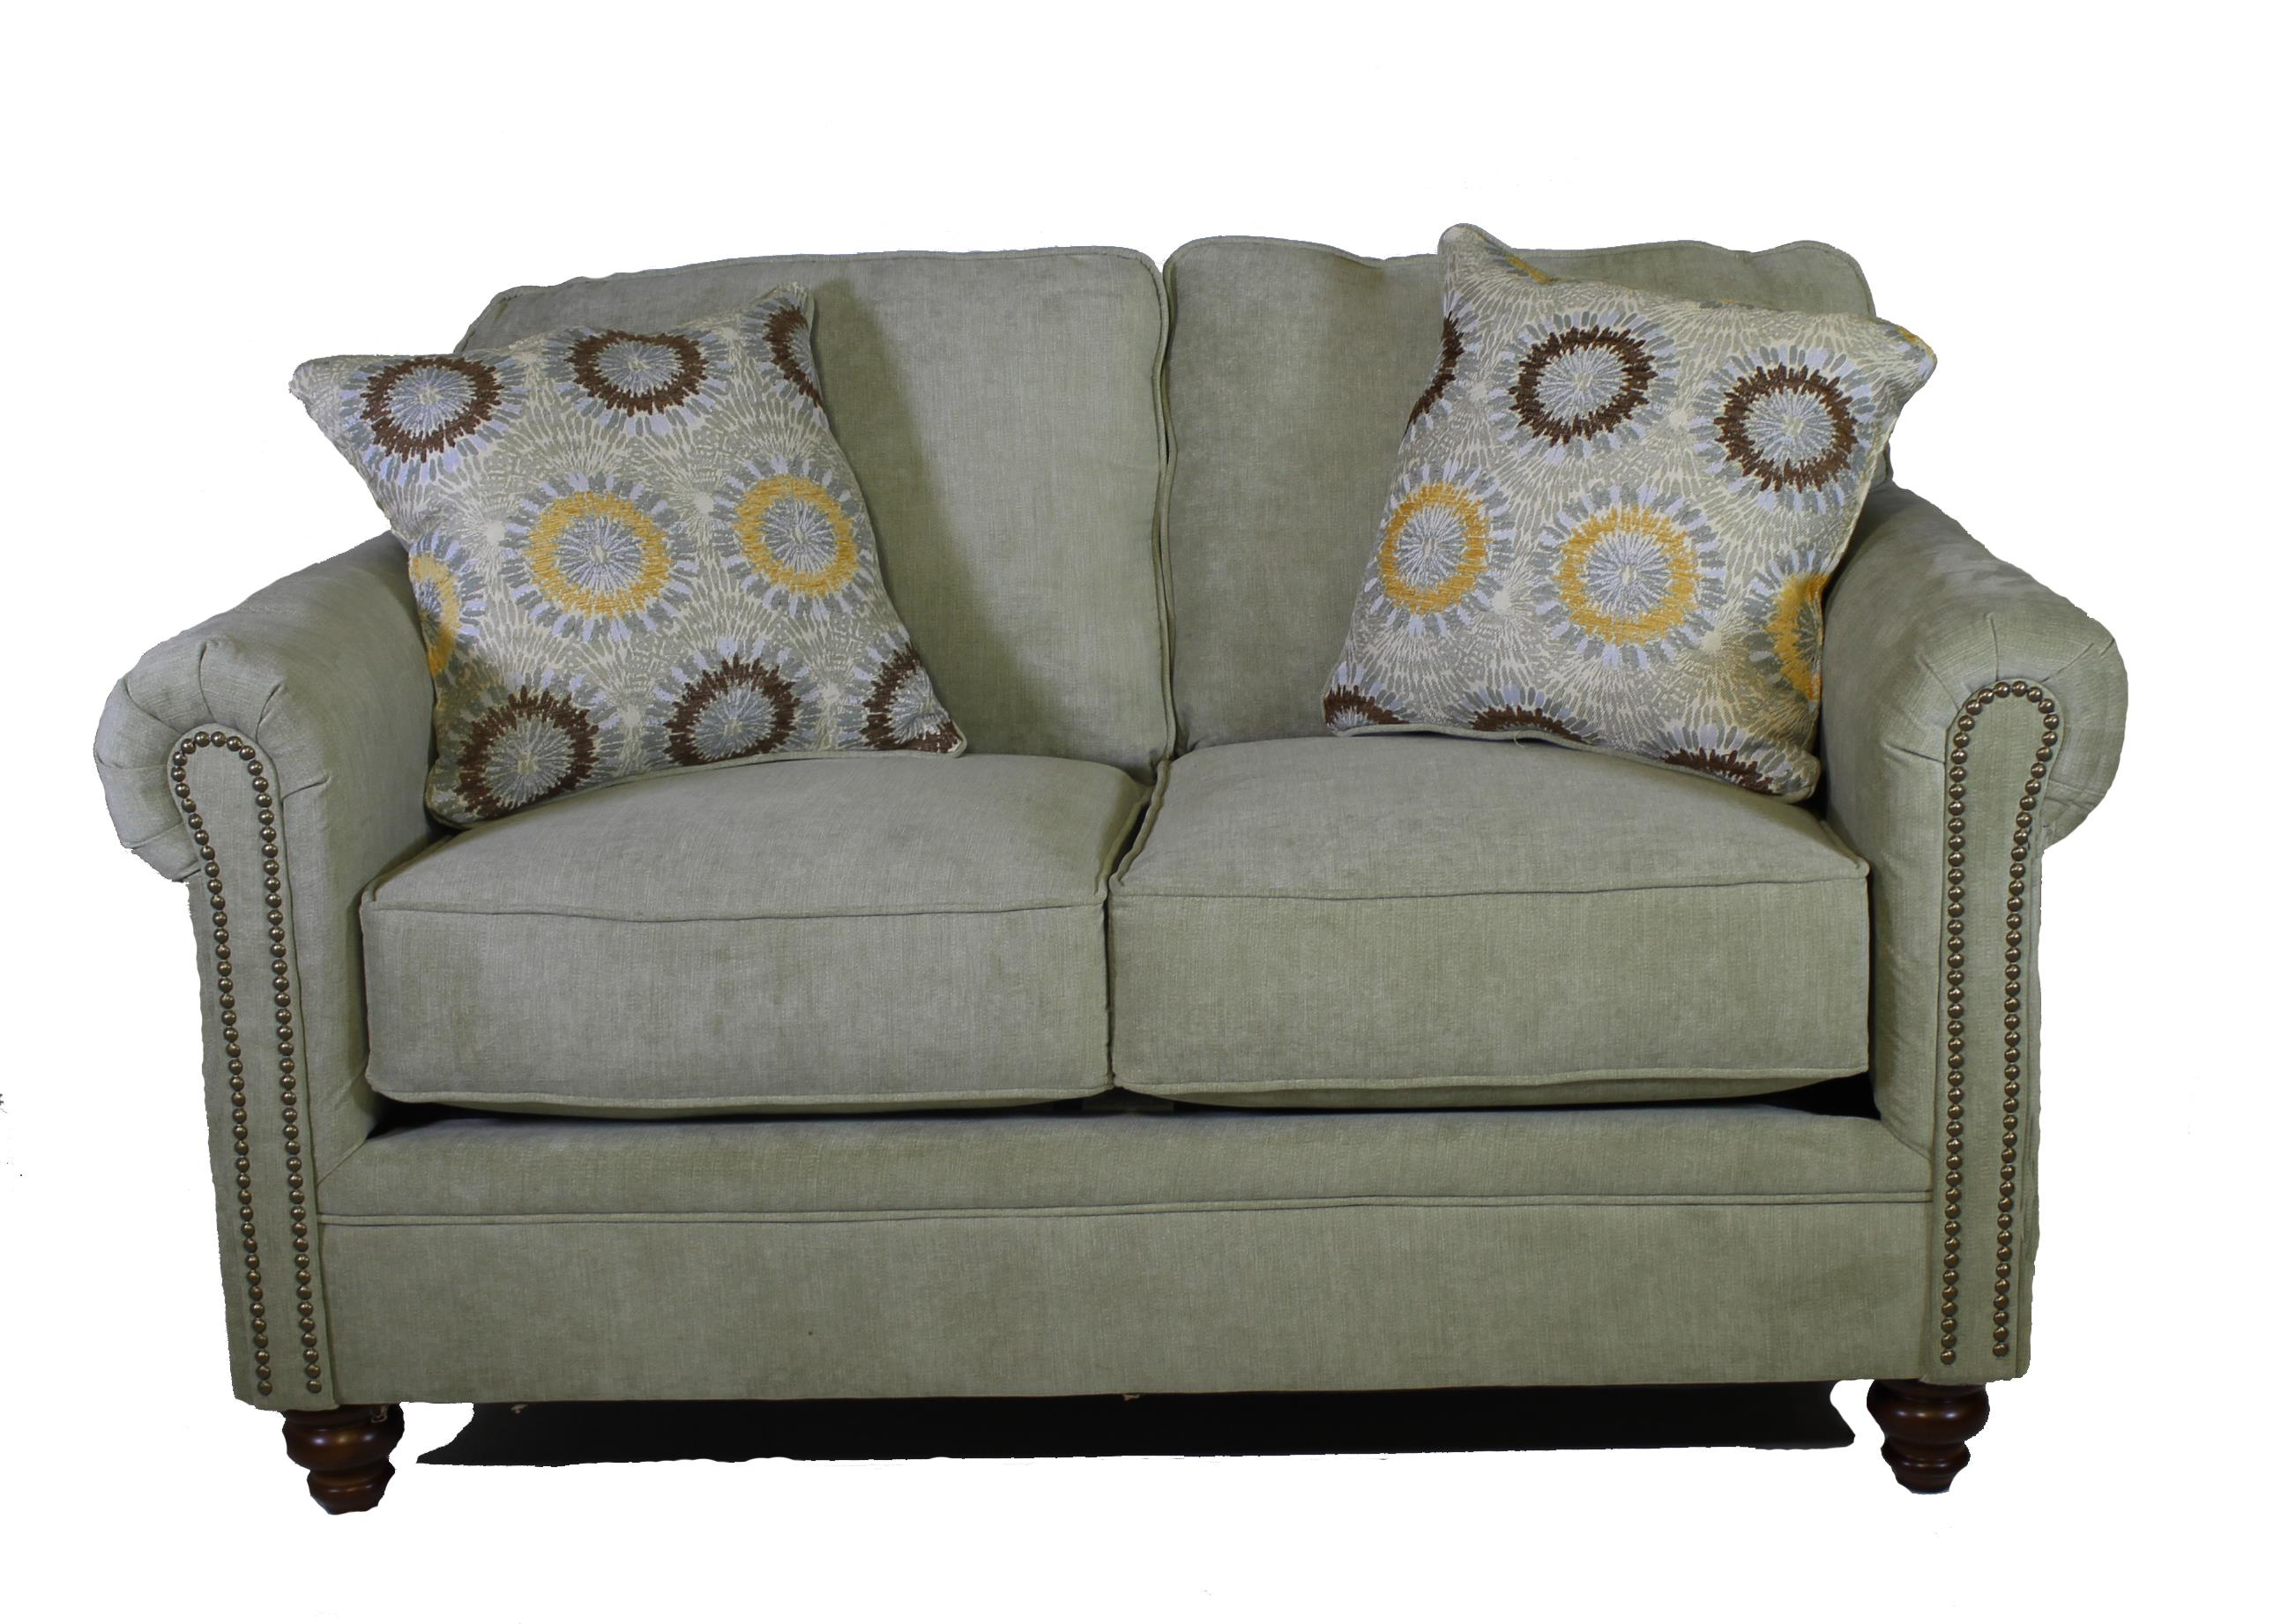 Serta Upholstery by Hughes 3600 Loveseat - Item Number: 3600